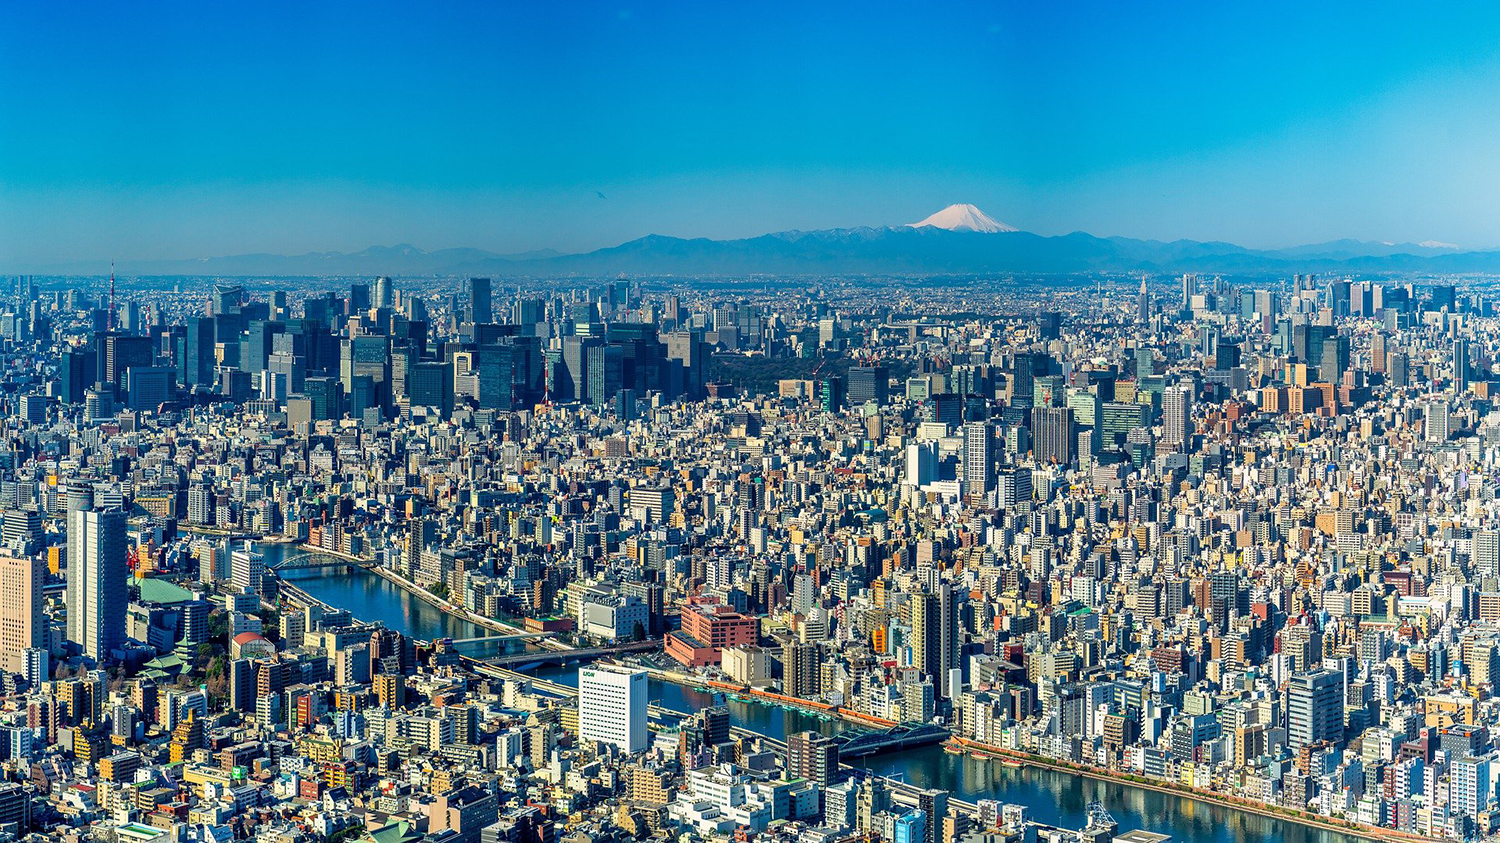 Tokyo, seen from above.